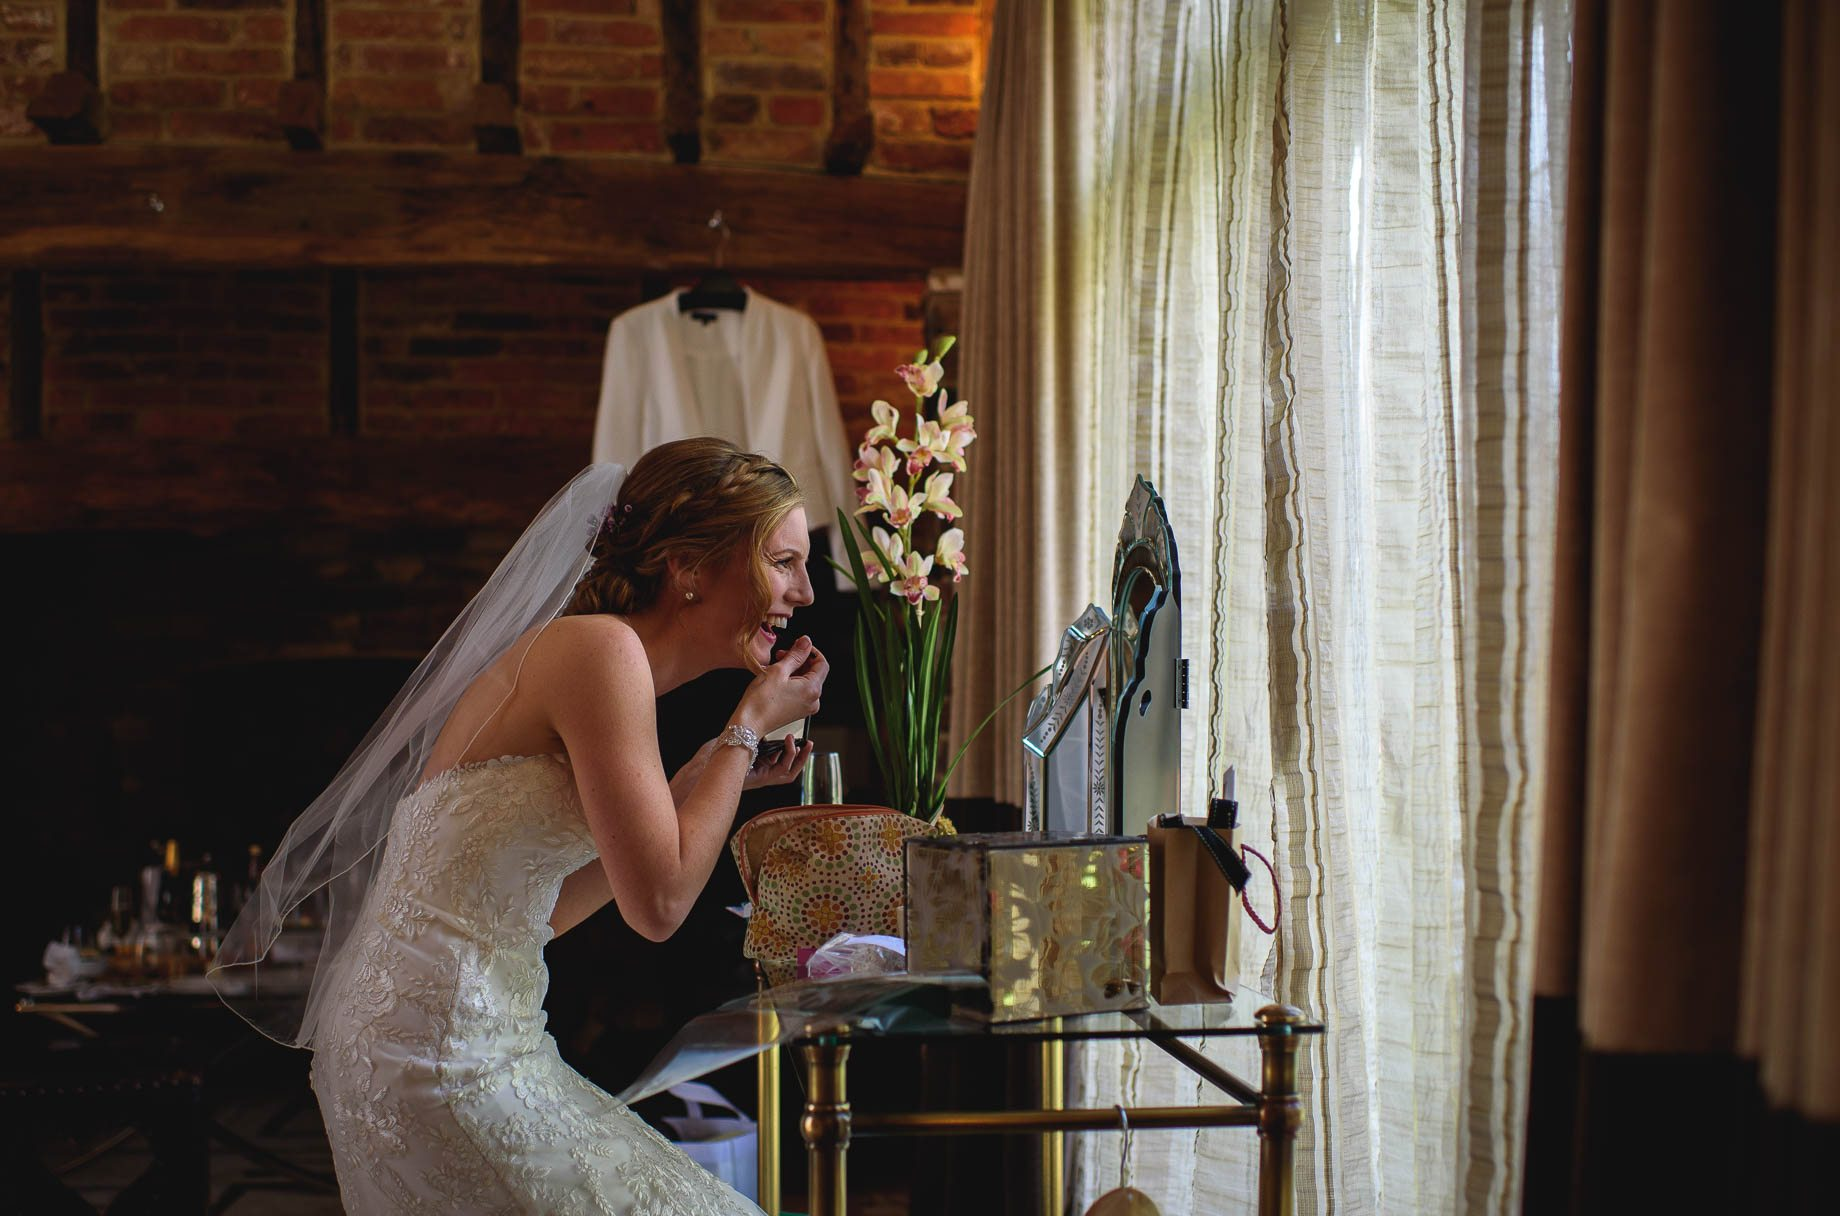 Rivervale Barn wedding photography by Guy Collier - Claire and Simon (41 of 133)